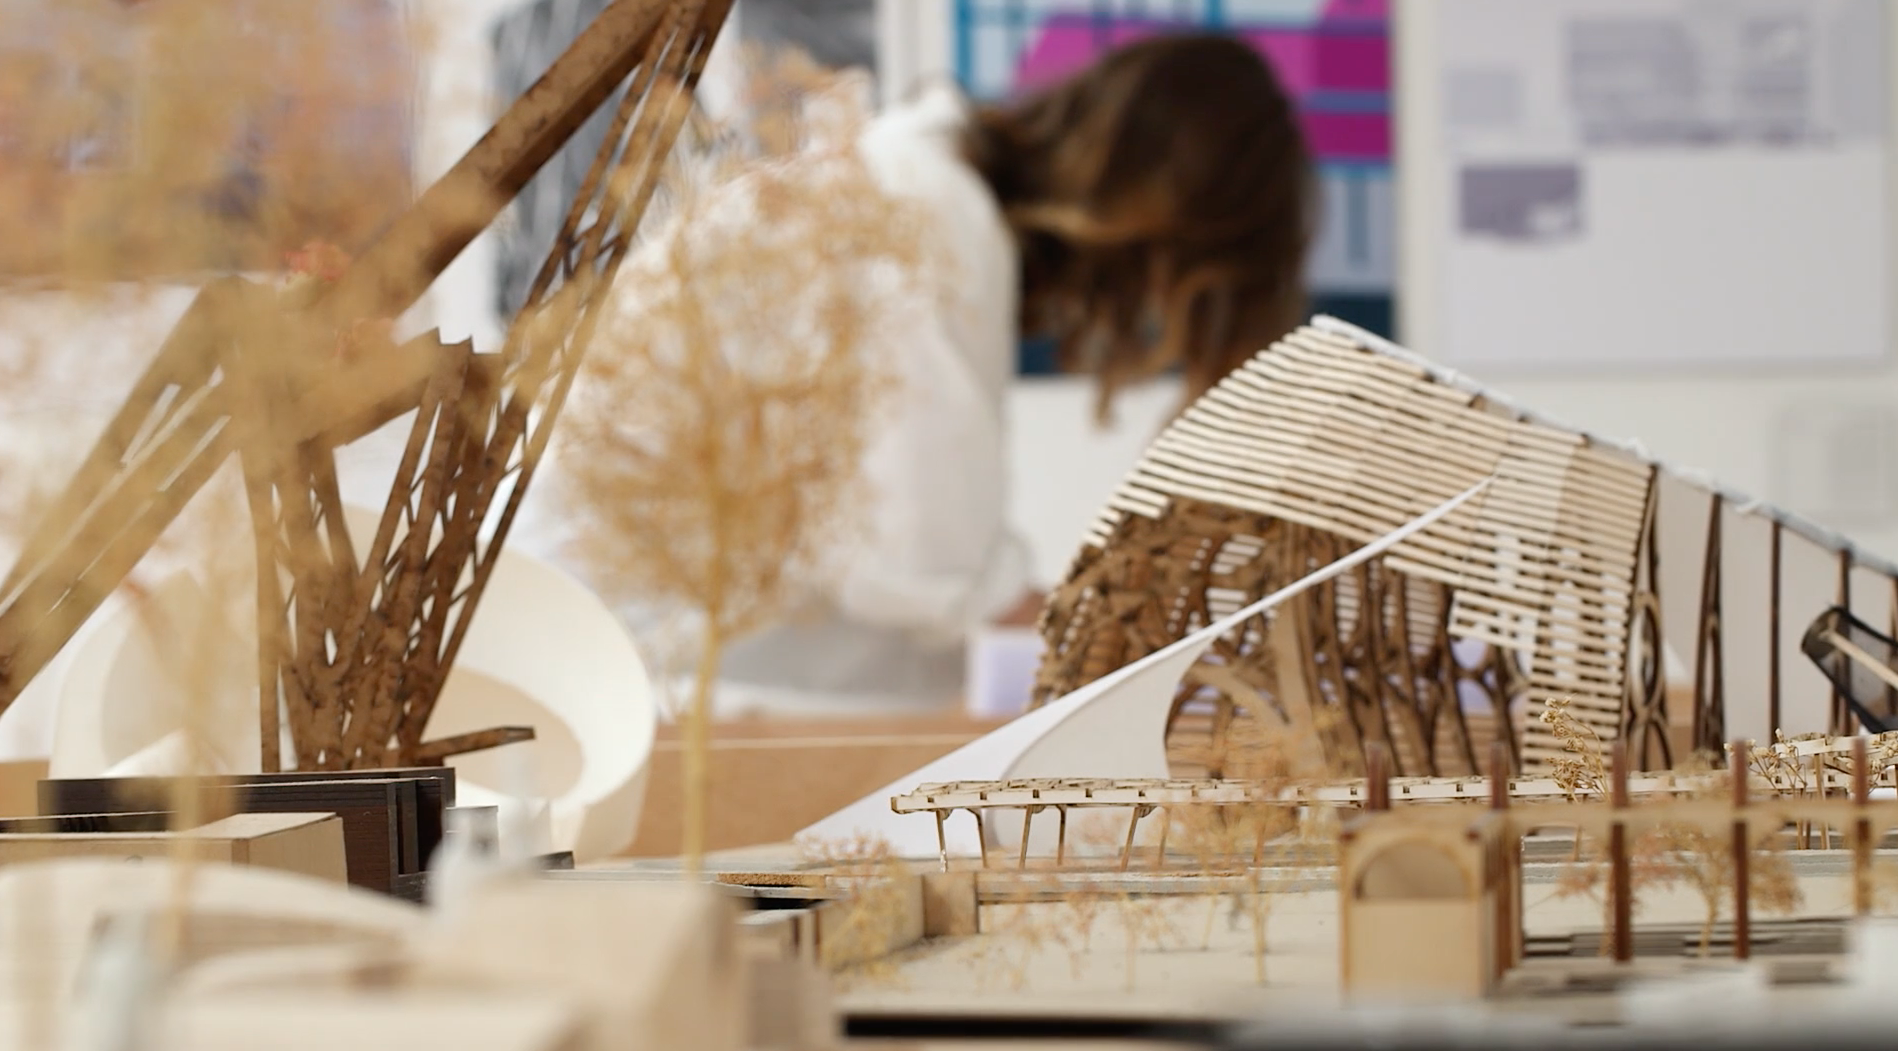 A short film about Stage 1 of the Mackintosh School of Architecture's Bachelor of Architecture programme